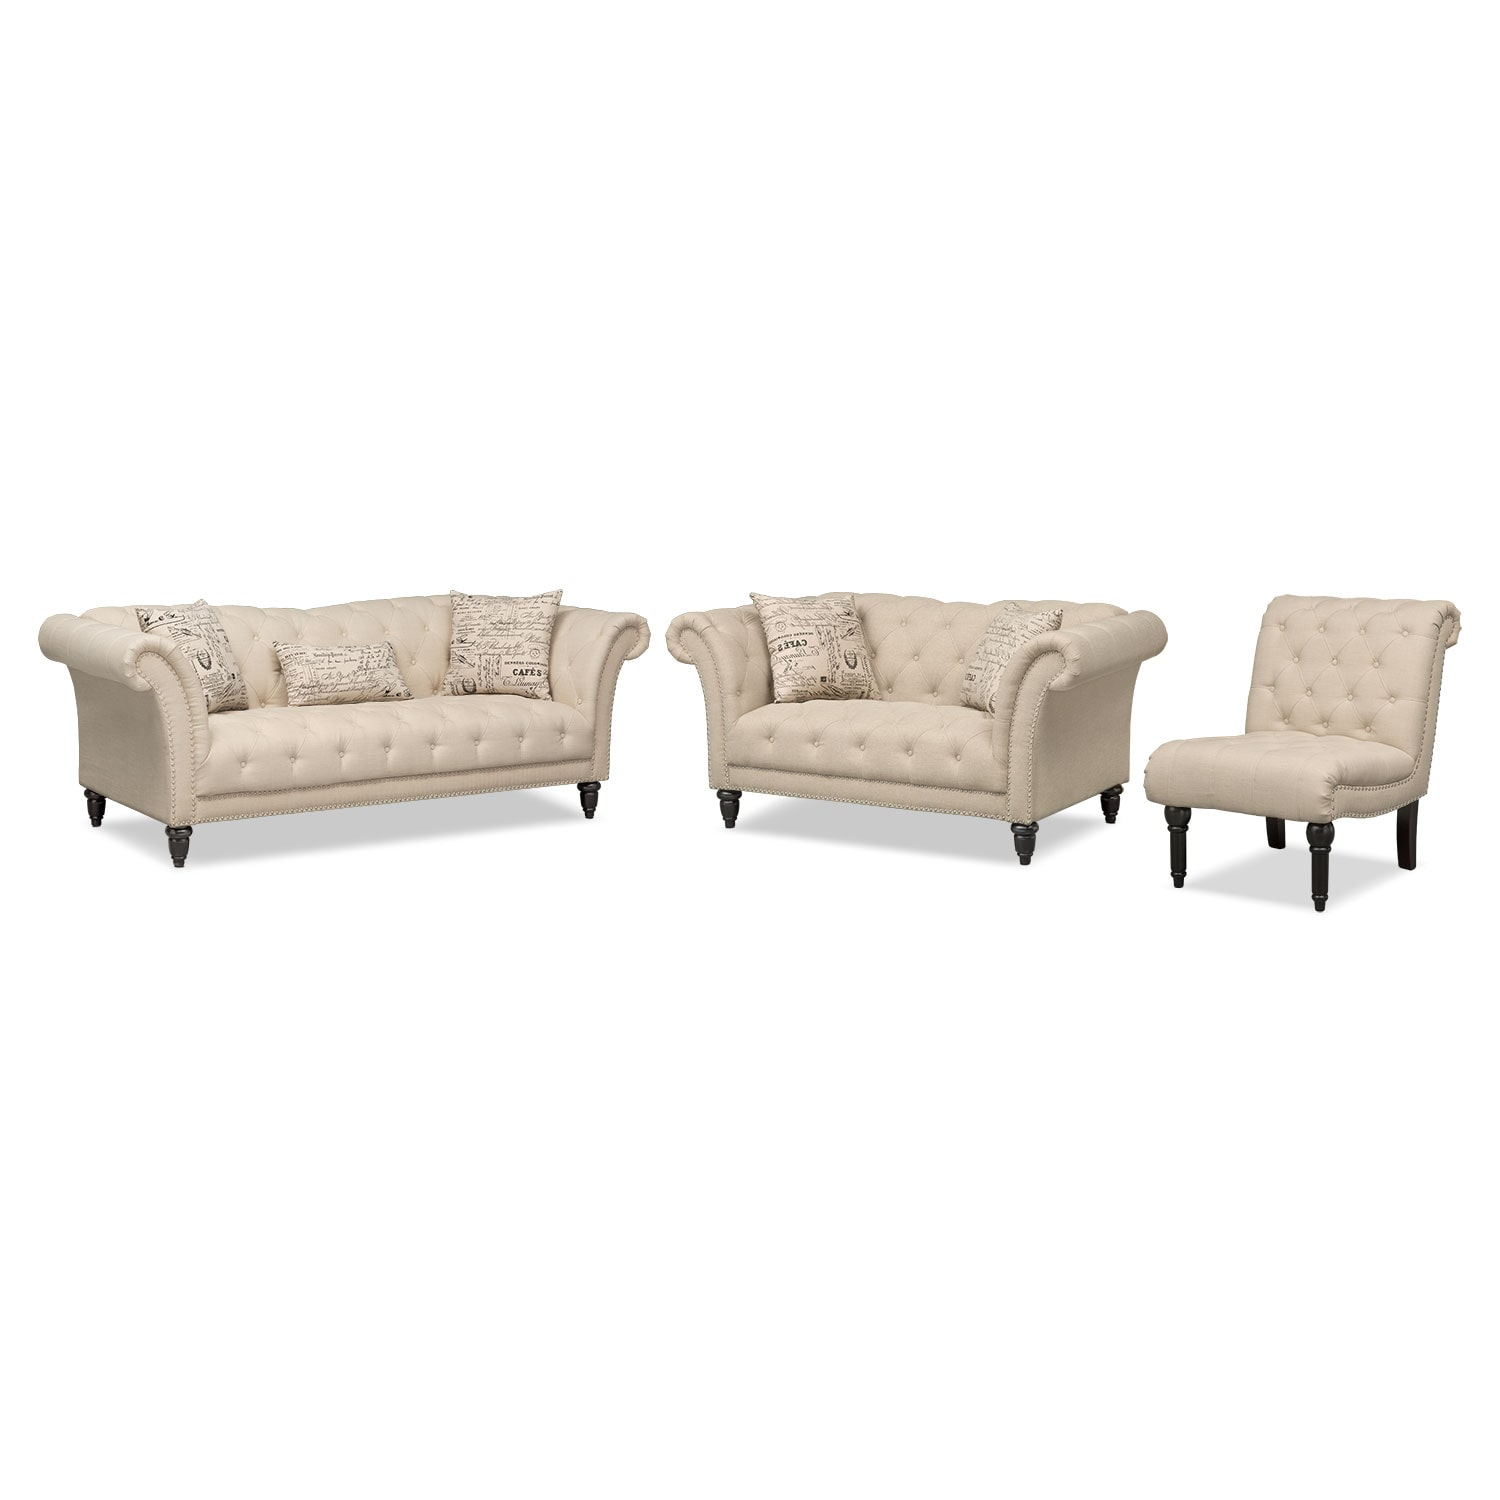 Of respondents would recommend this to a friend living room furniture marisol sofa